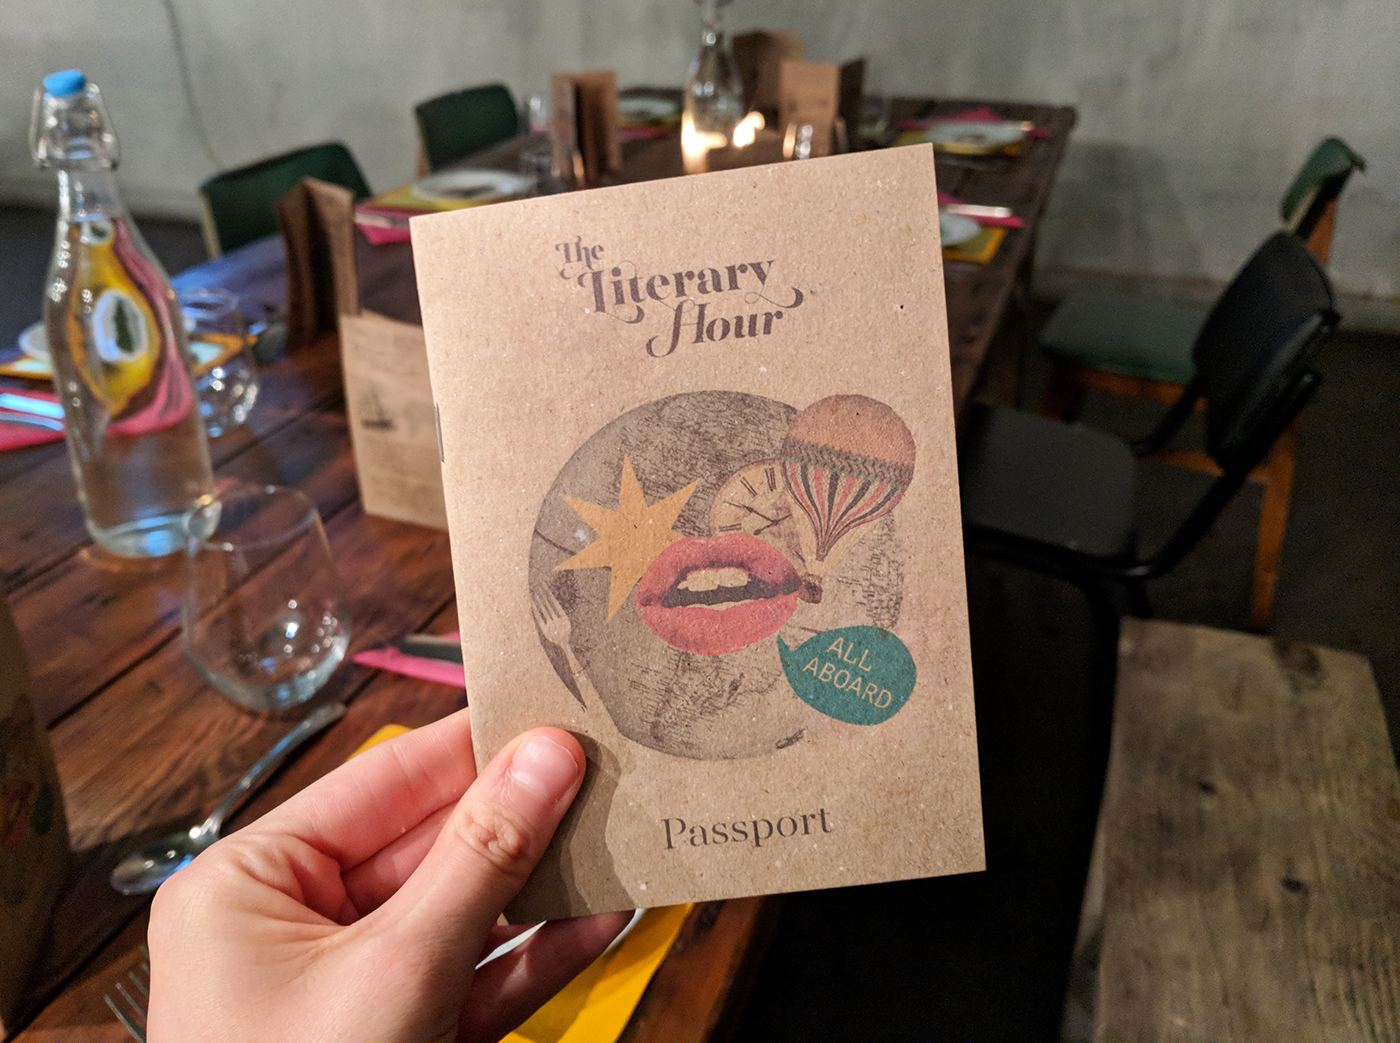 Around The World in 80 Days With The Literary Hour